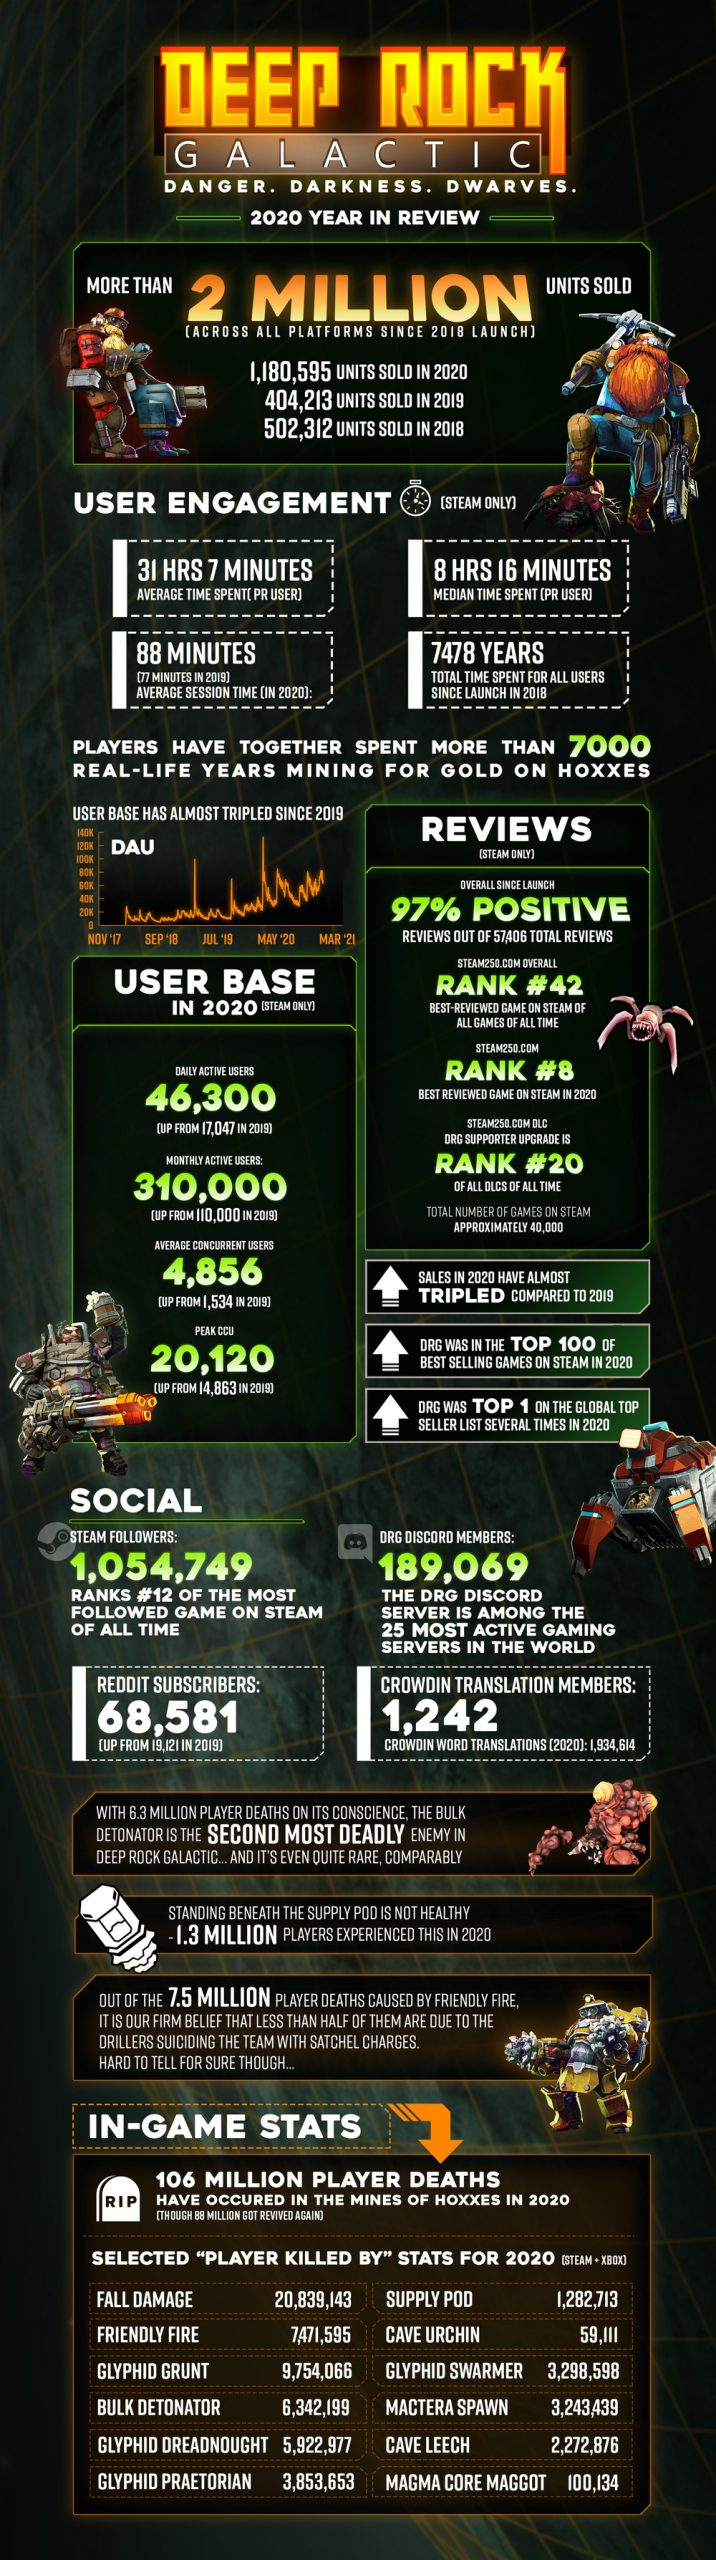 Deep Rock Galactic_2020 Year in Review